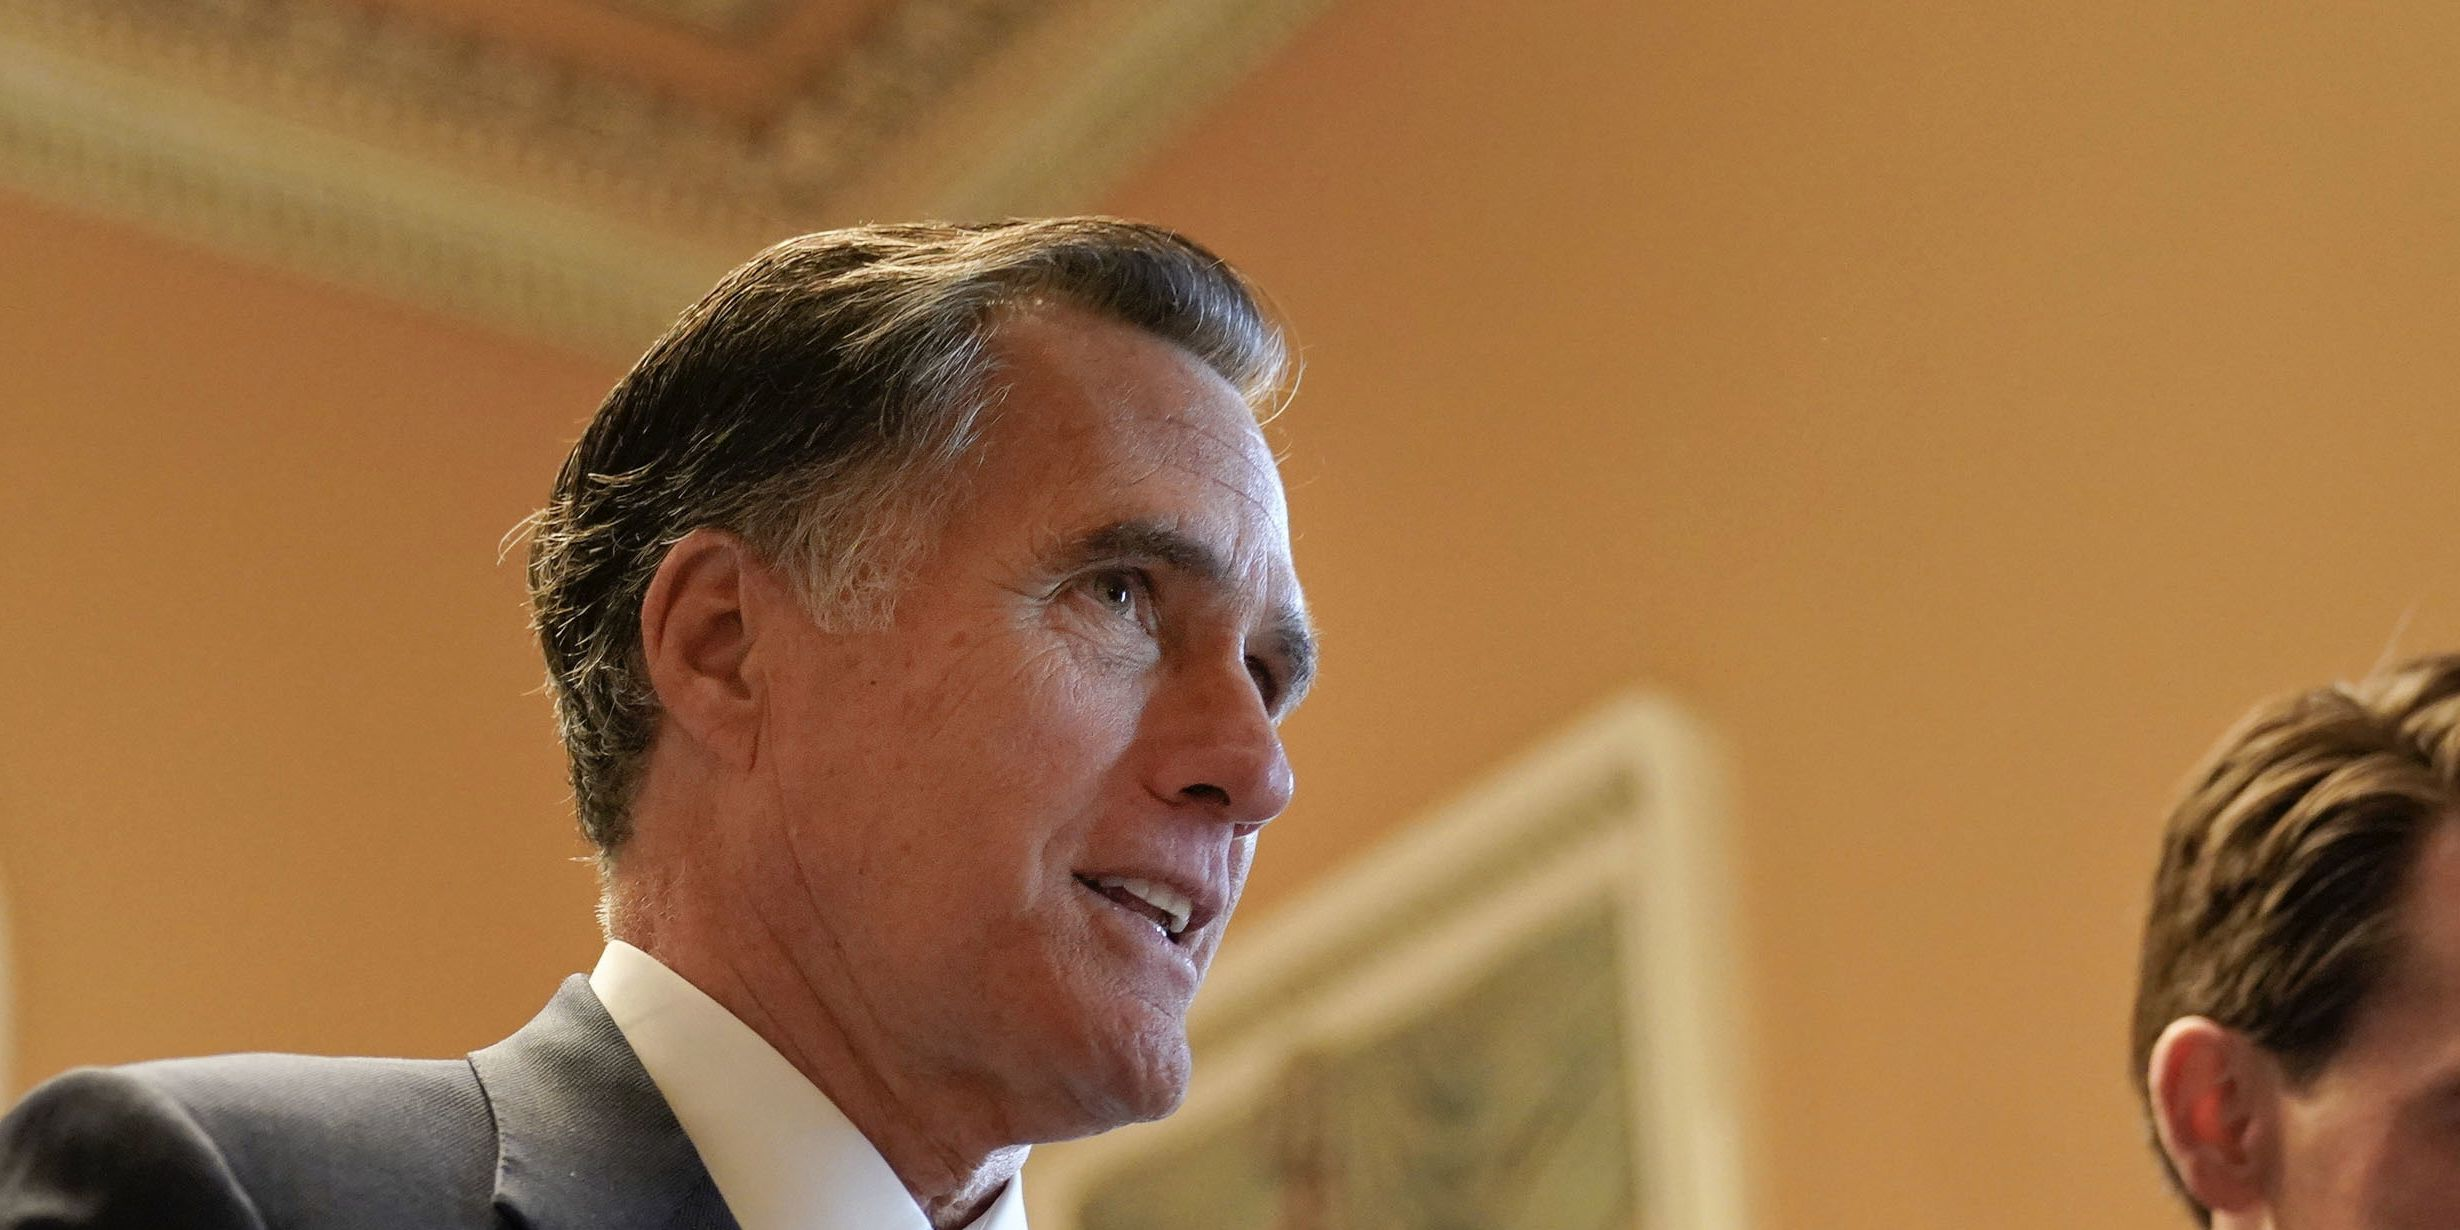 New year begins with Romney, Trump at odds